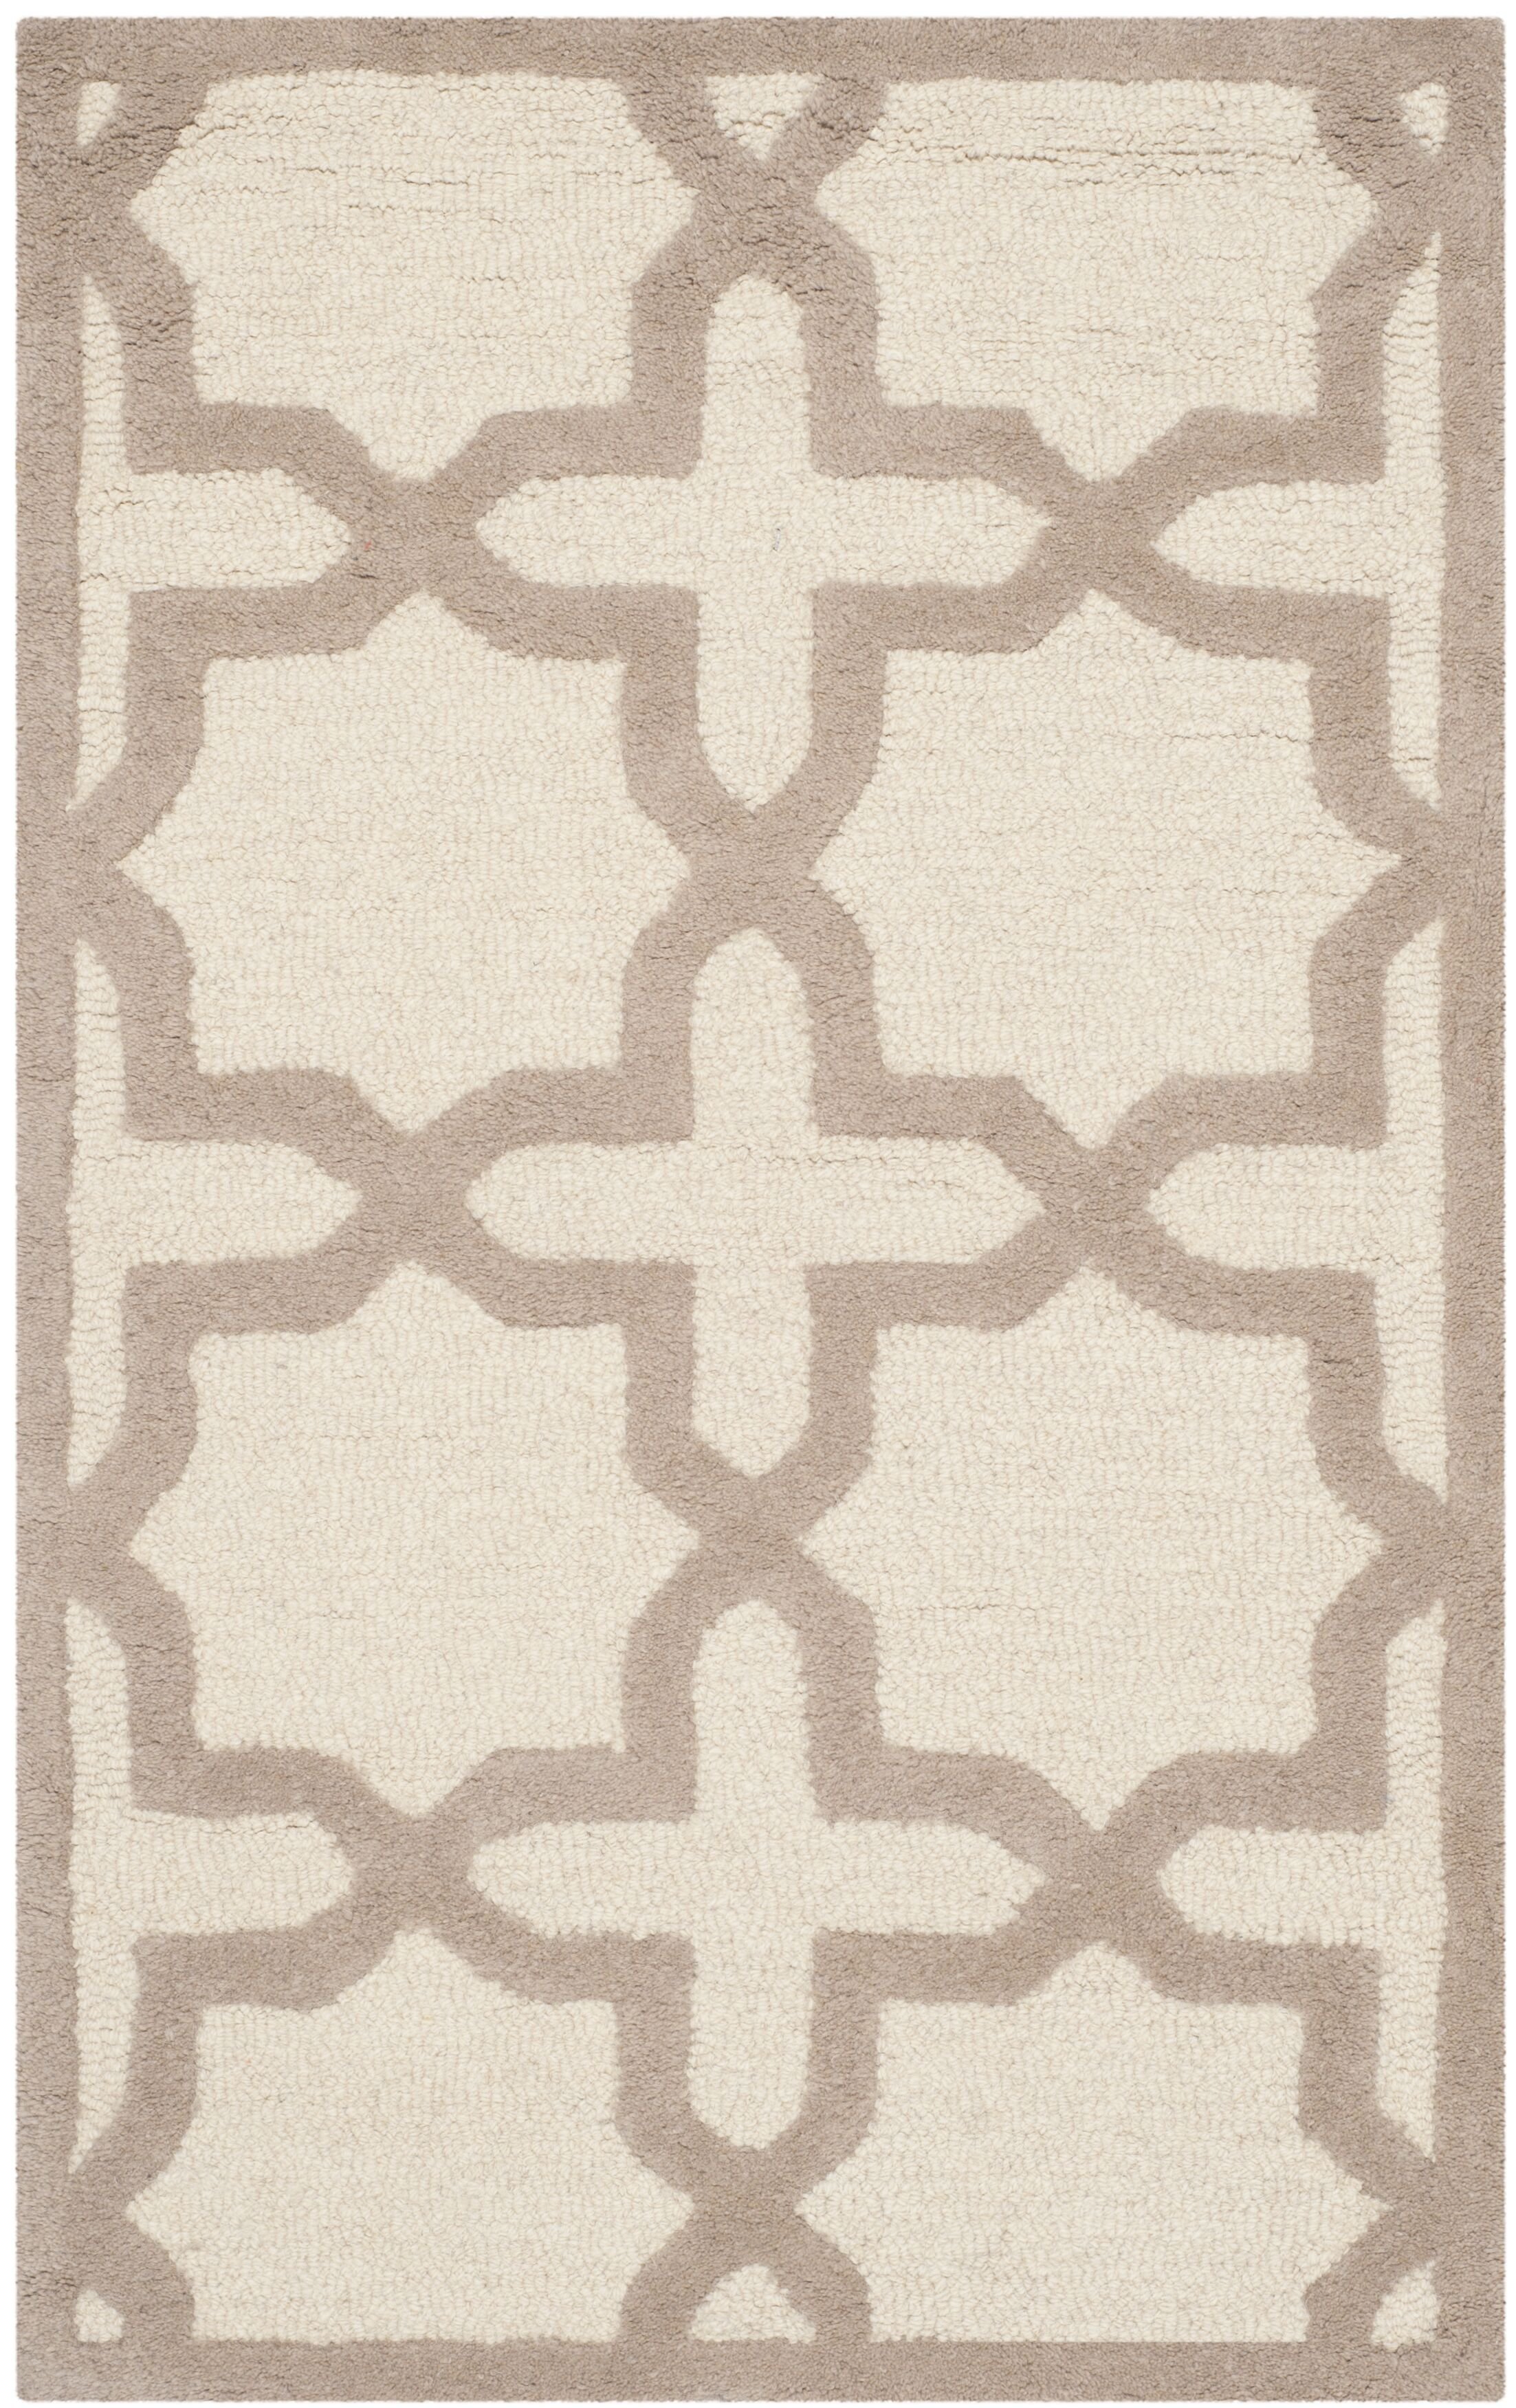 Martins Ivory / Beige Area Rug Rug Size: Rectangle 5' x 8'